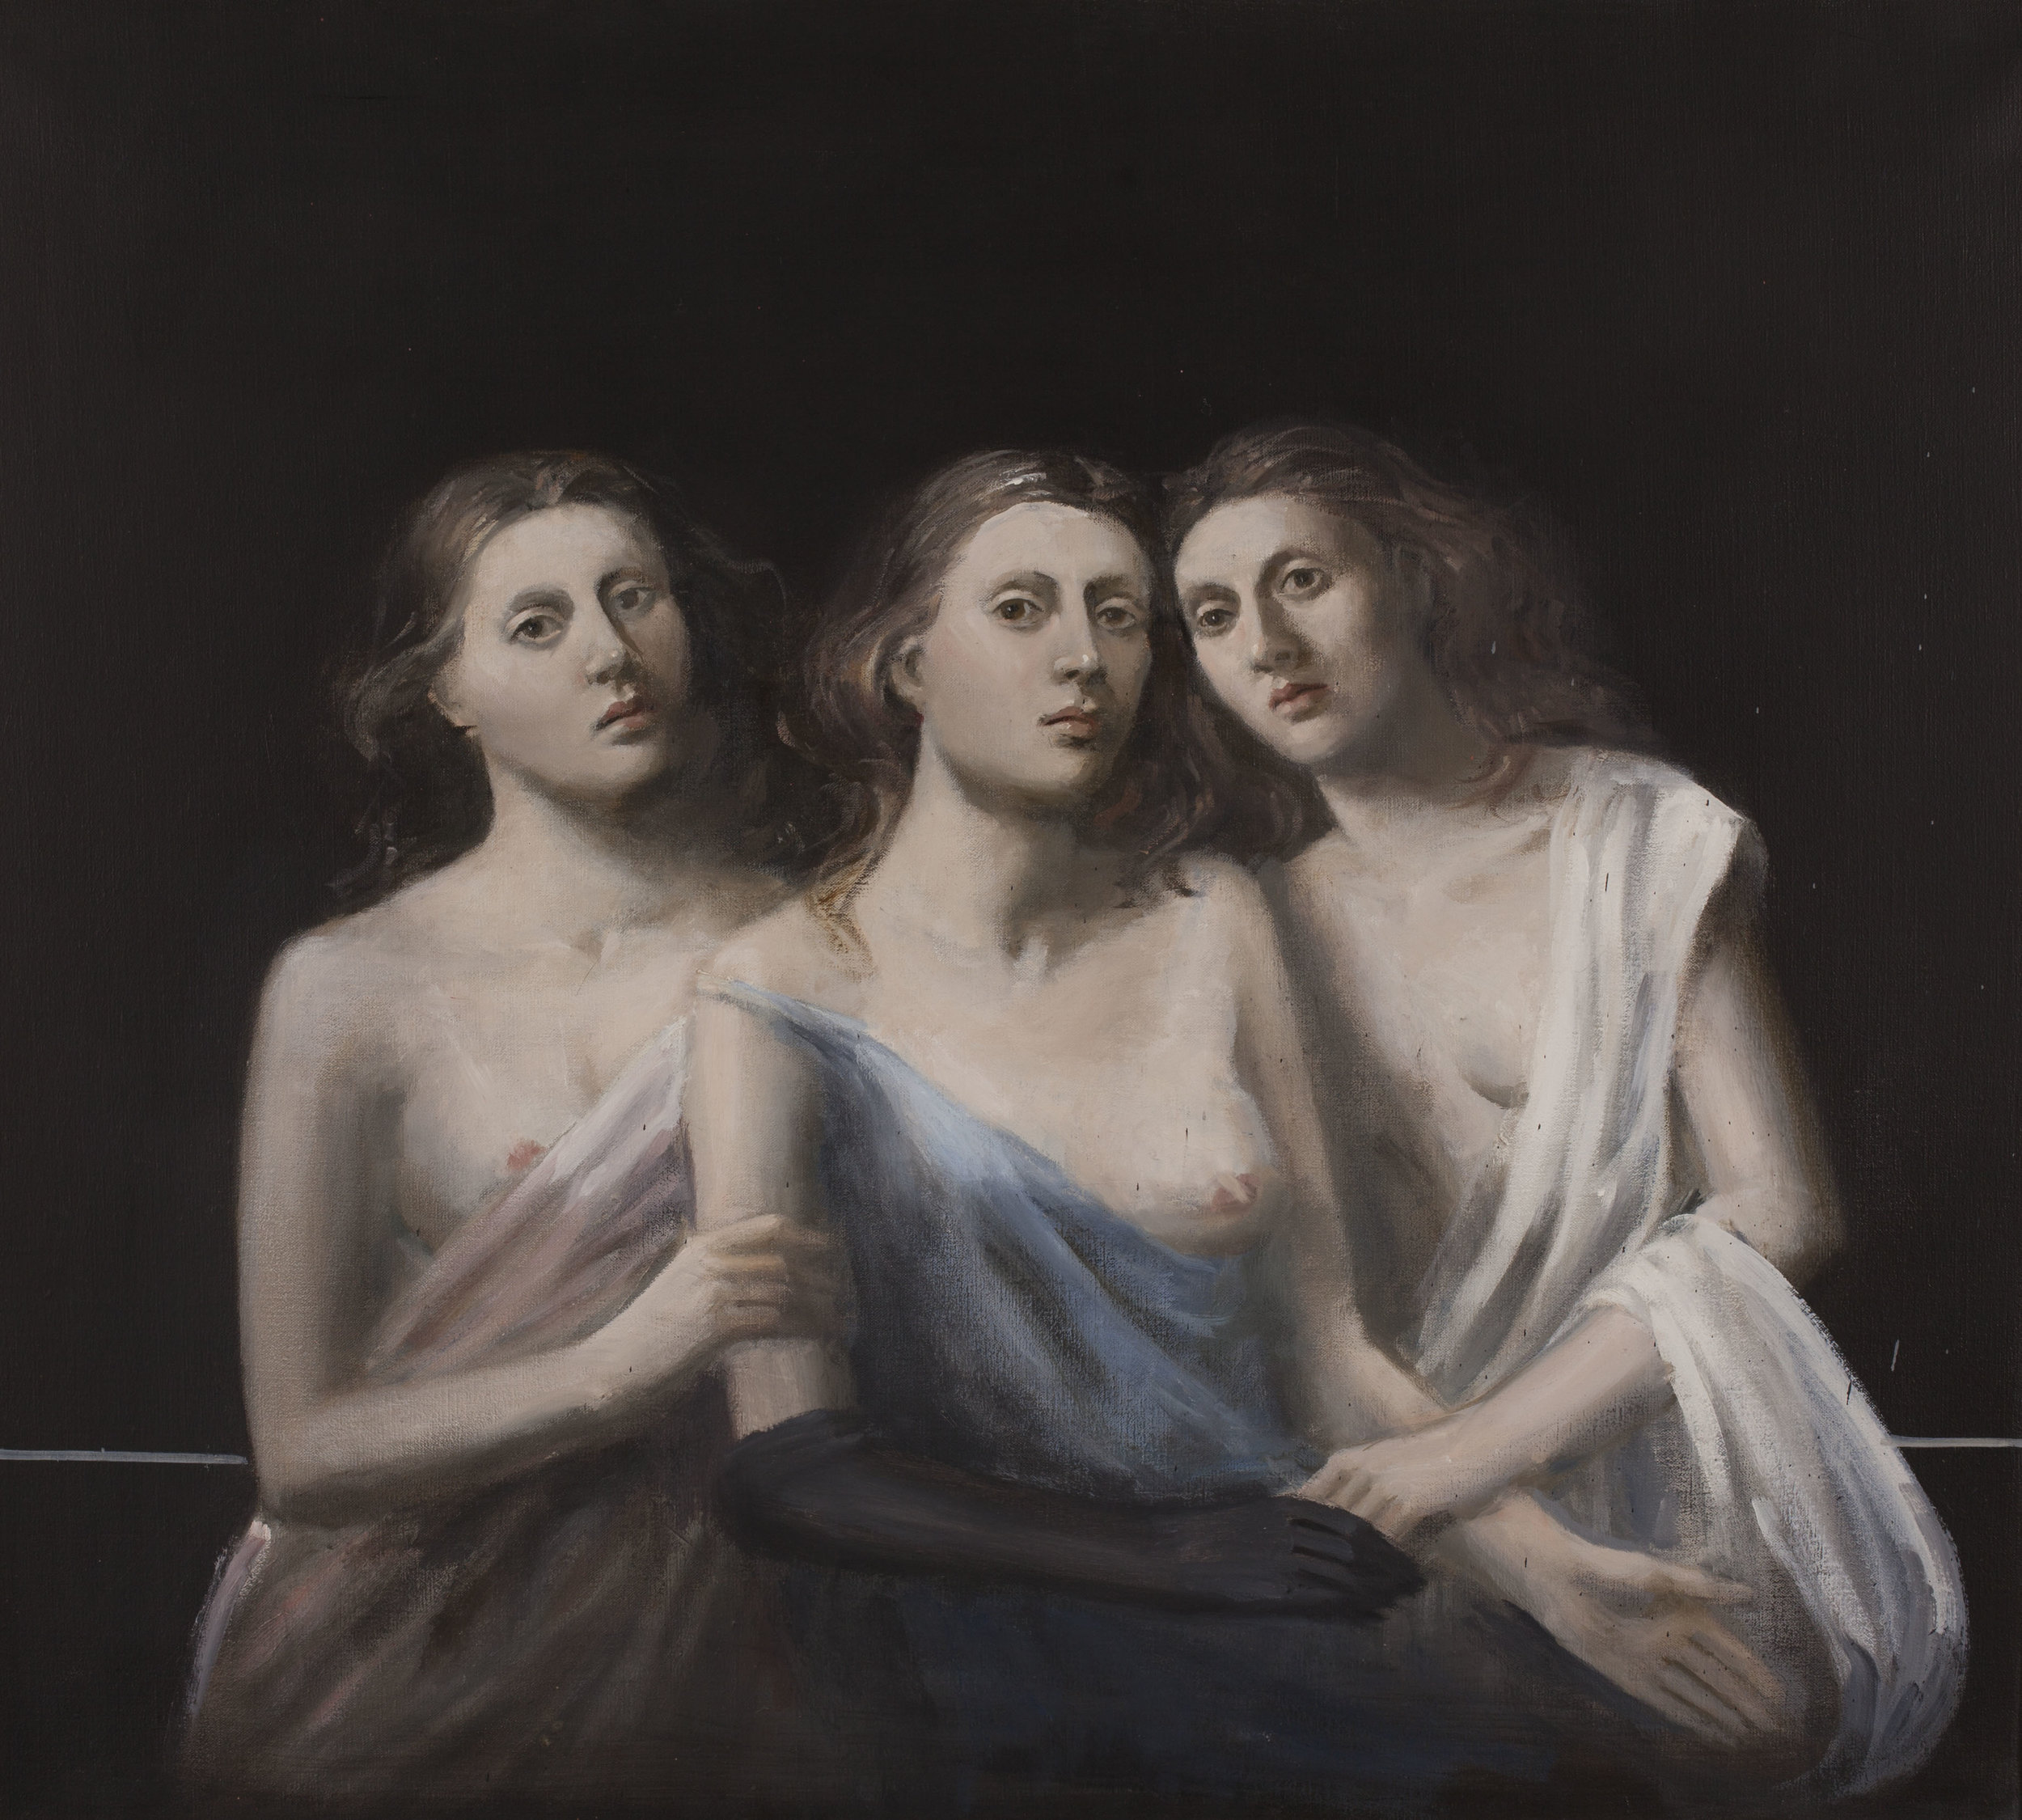 Raymond Han (1931-2017),  Untitled (Three Sisters) , ca. 2003. Oil on linen, 34 x 36 inches